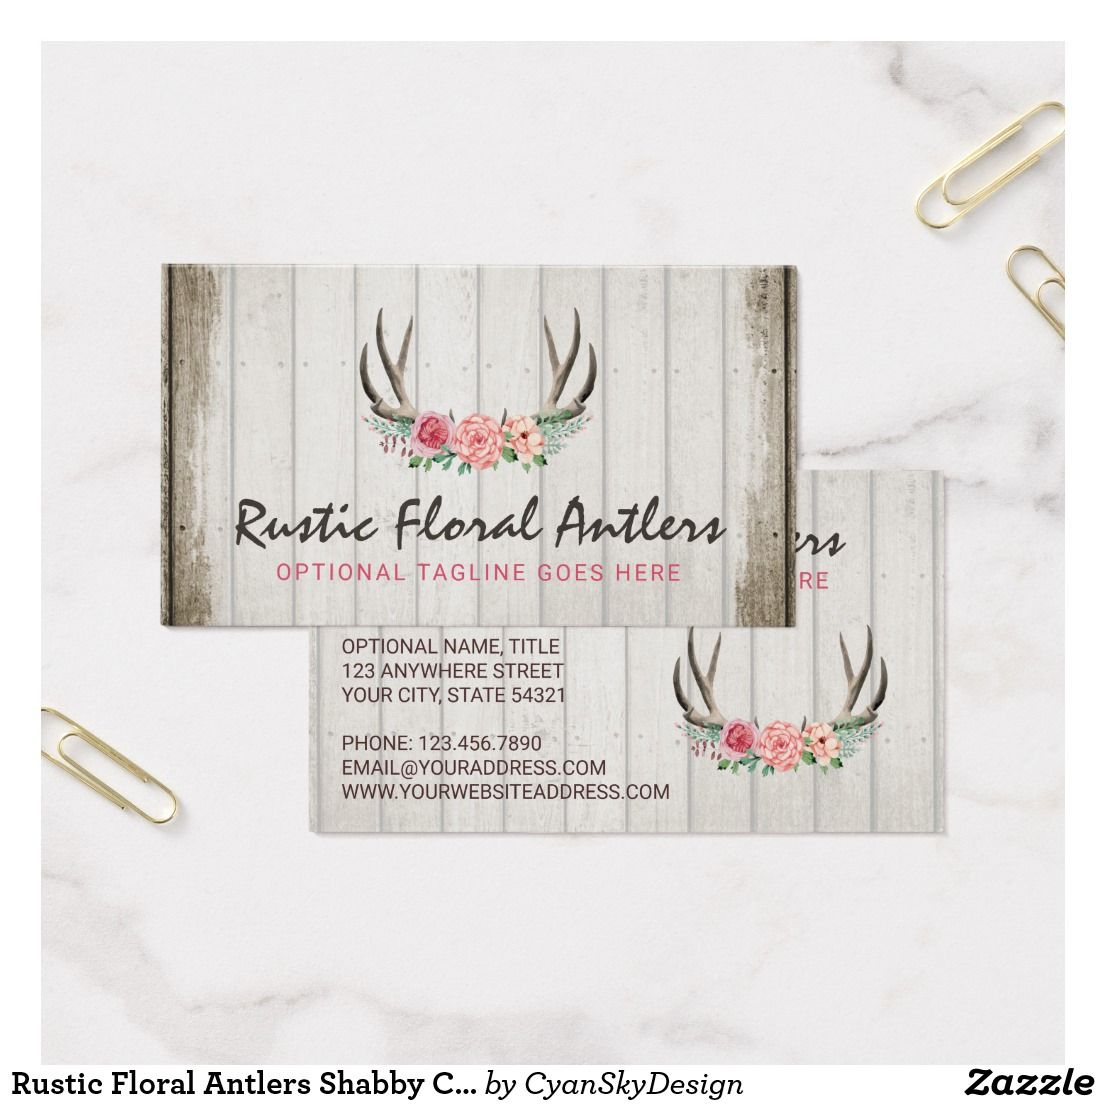 Rustic floral antlers shabby chic roses wood business card wood rustic floral antlers shabby chic roses wood business card branding marketing design by cyanskydesign on zazzle reheart Image collections